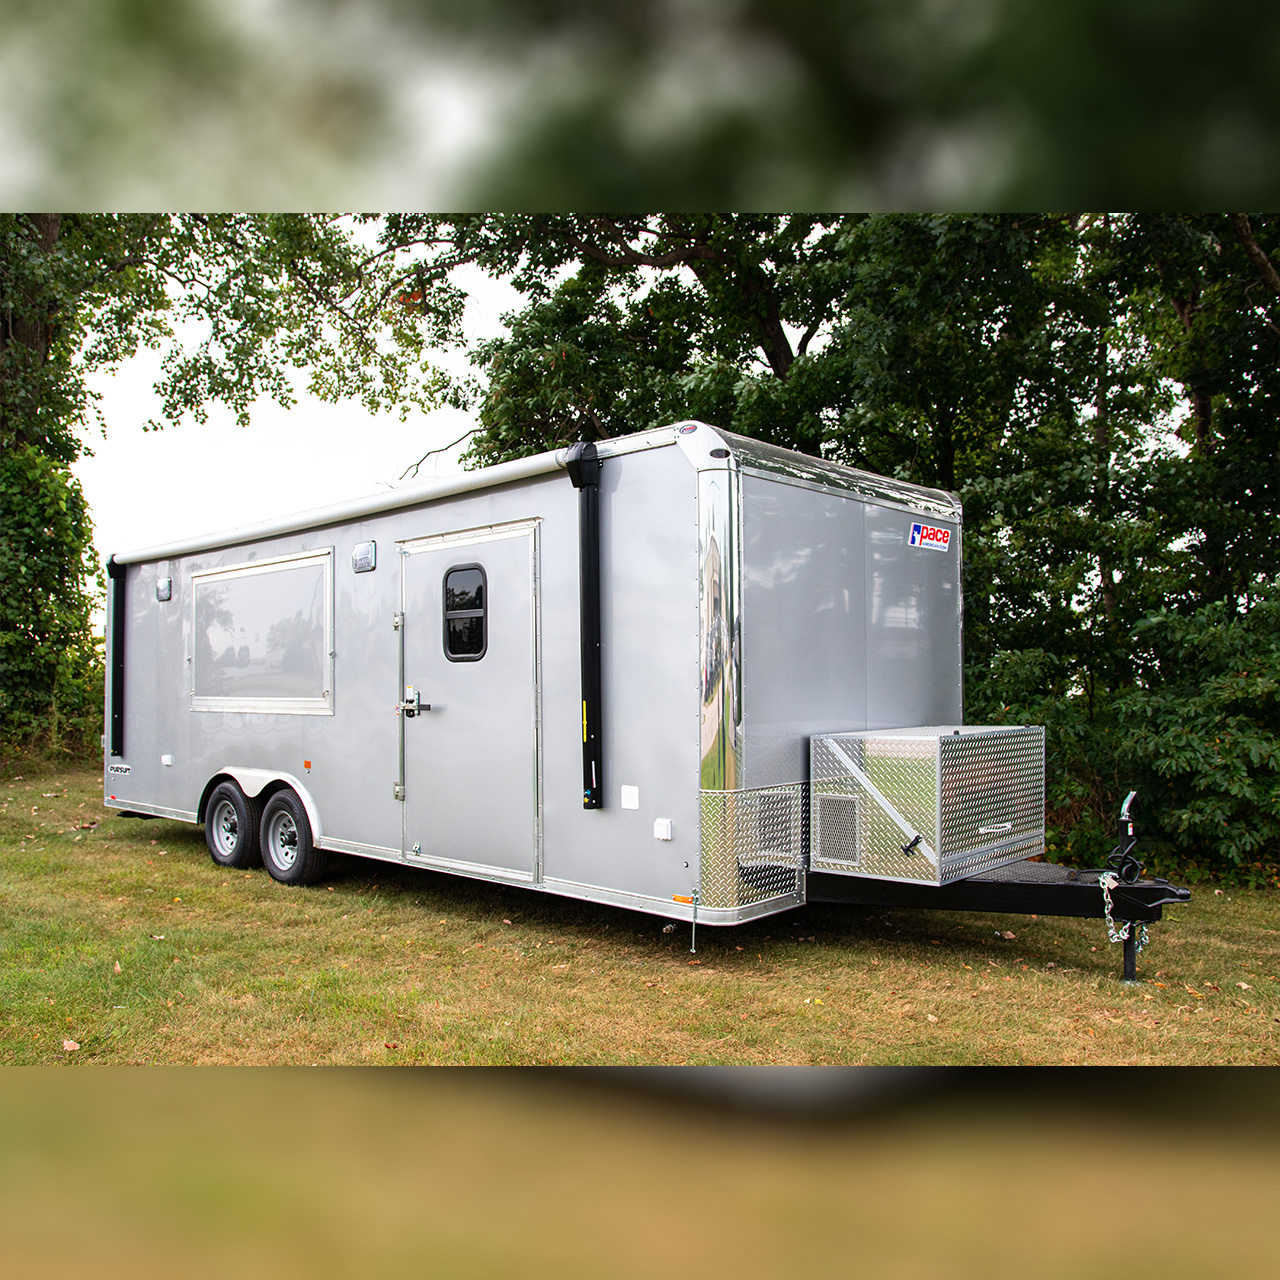 Pursuit - Custom Build - Awning - Cargo Trailer - Pace American